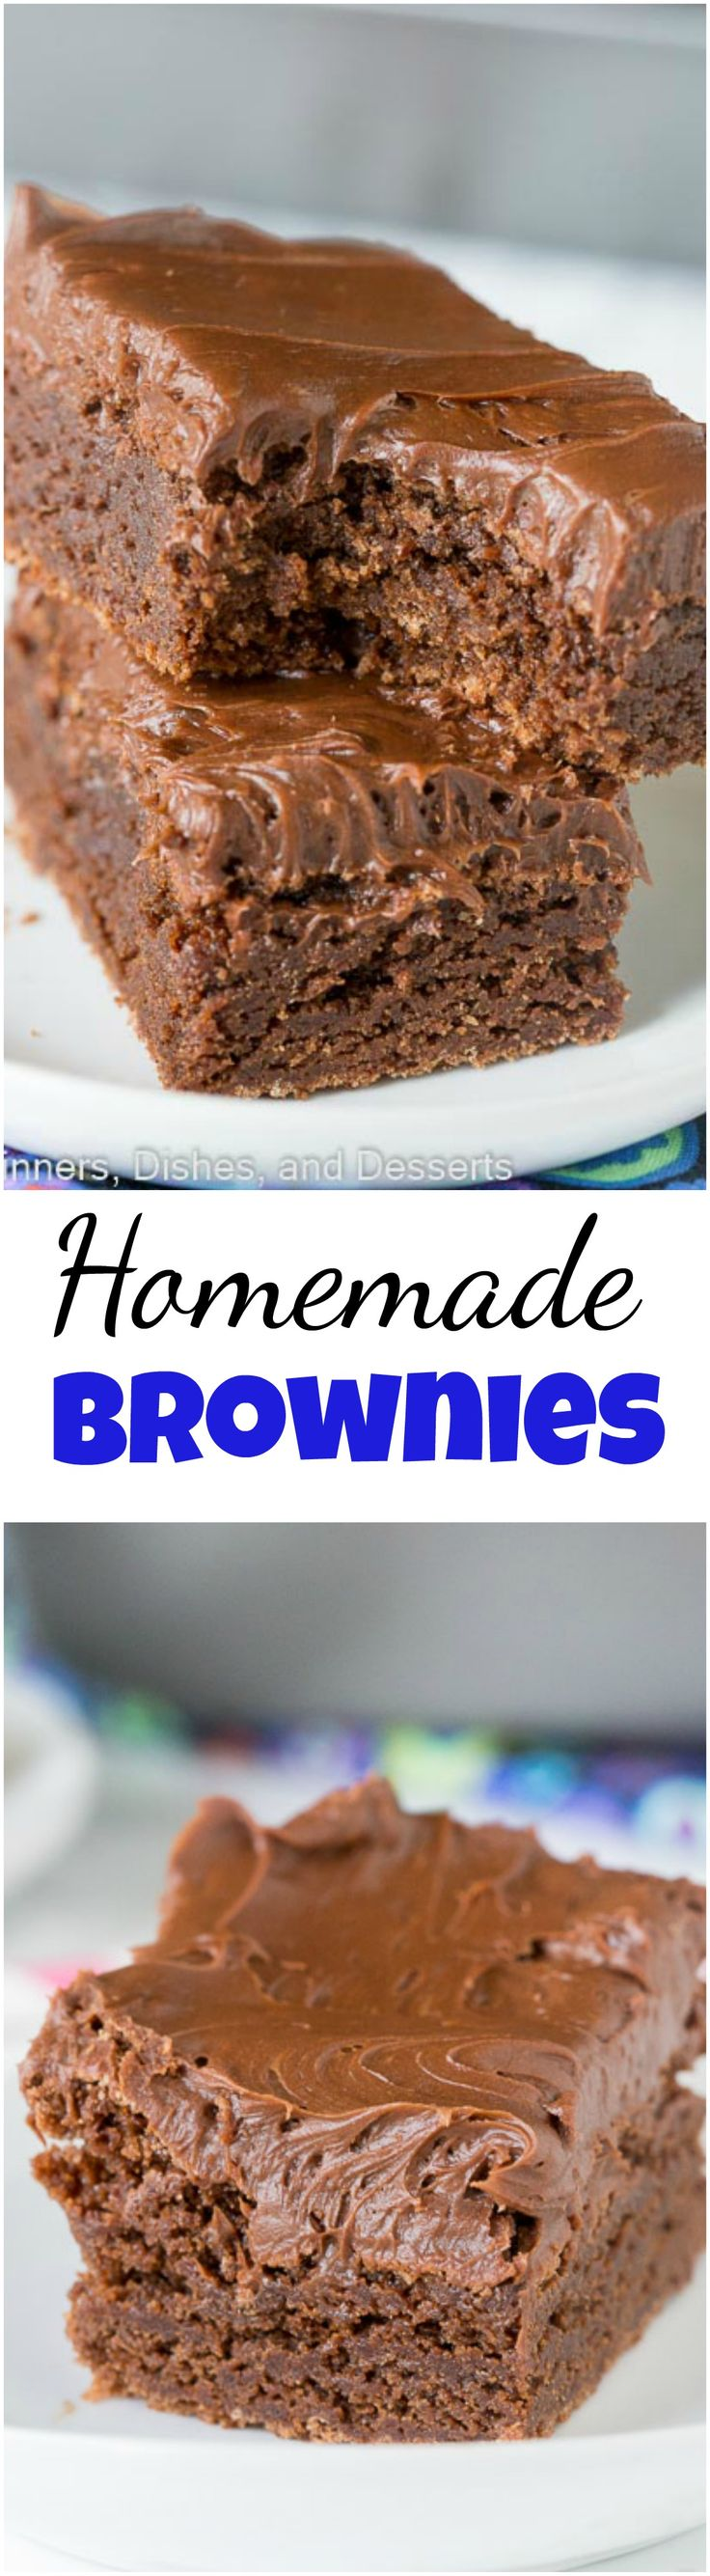 Easy Homemade Brownies Recipe - an easy one bowl brownie recipe that are super fudgy, chocolately, and delicious! (=)